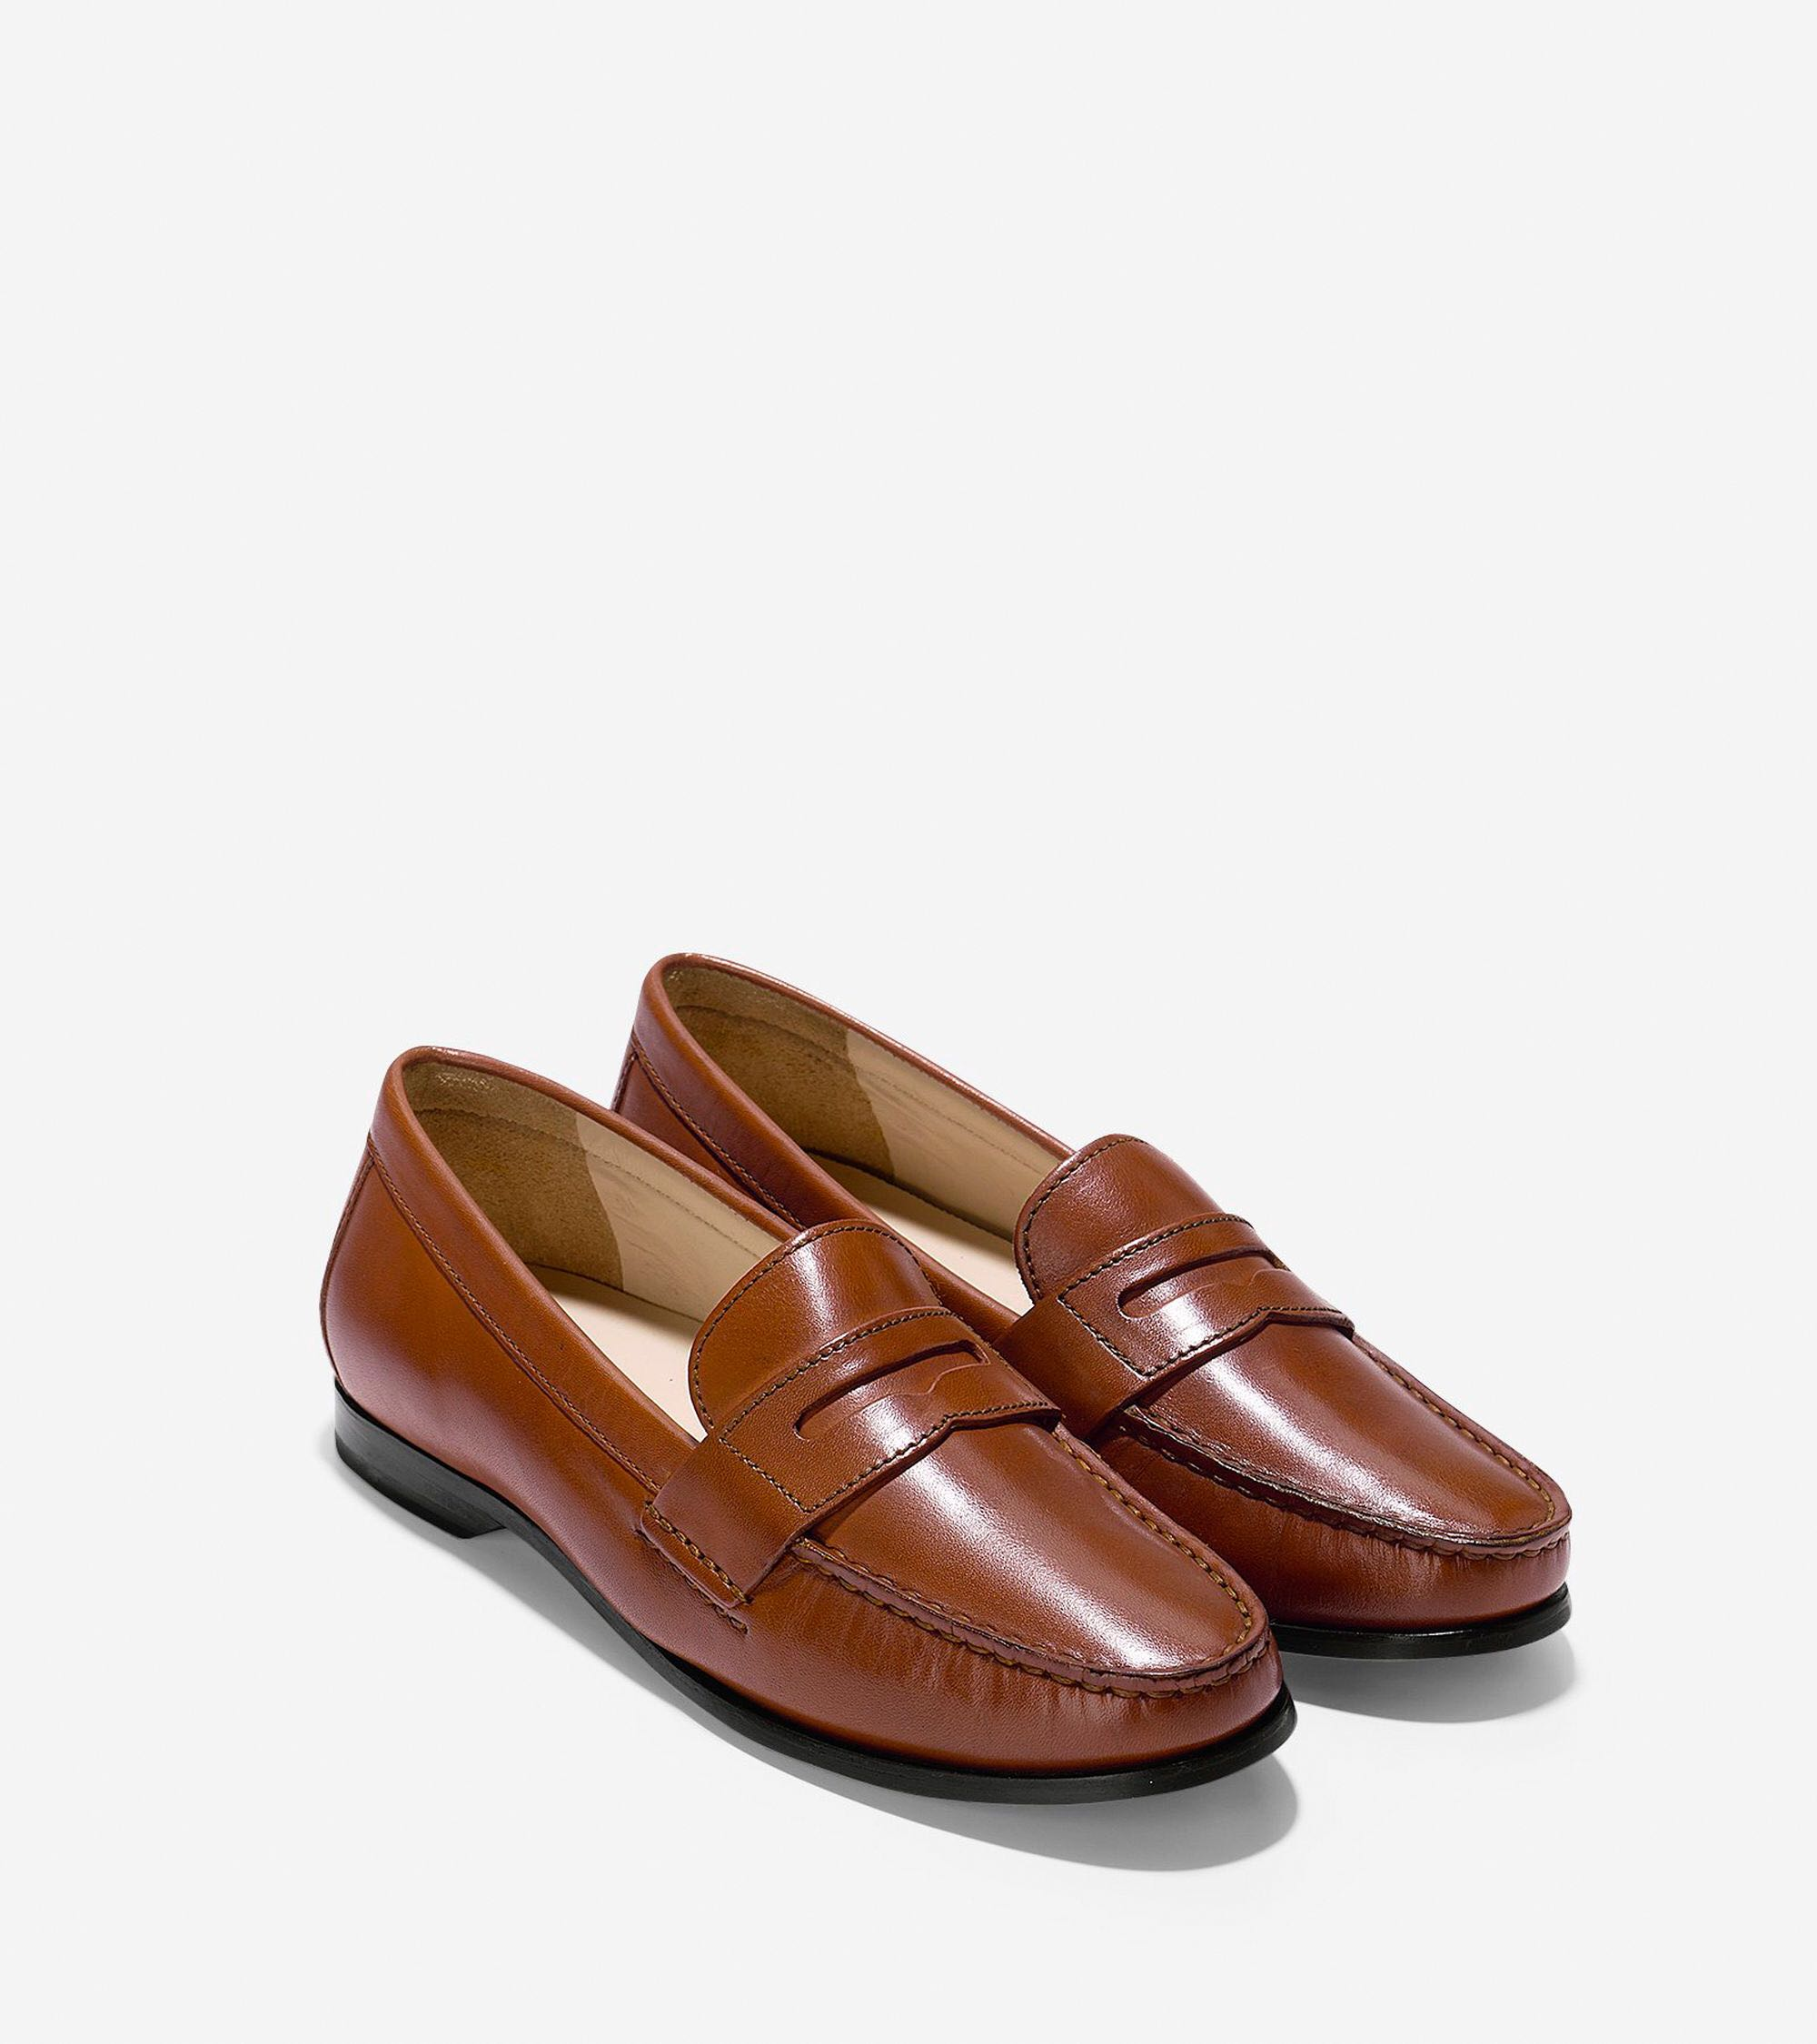 a419b6ff2eb68 Cole Haan Loafers